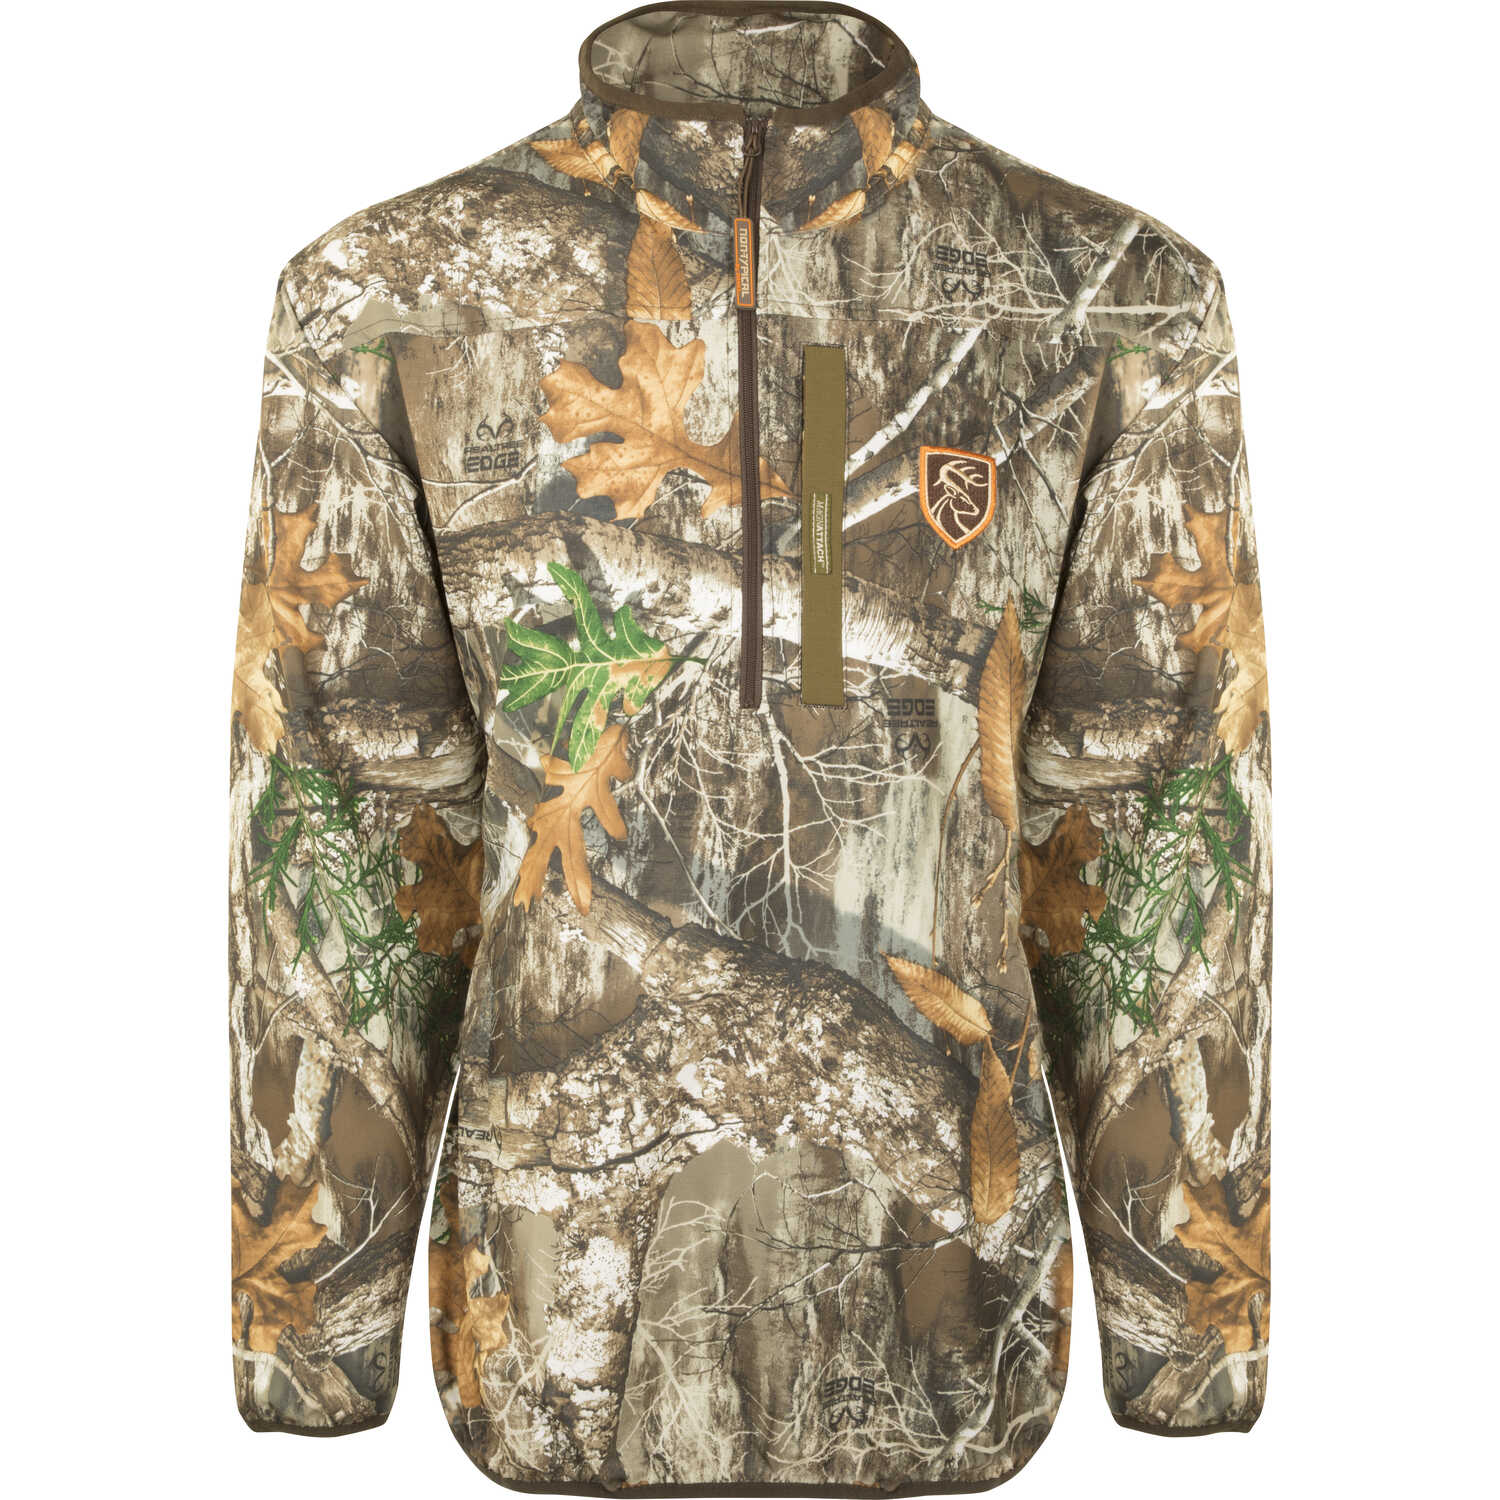 Drake  Camo Tech  Large  Men's  Long Sleeve  Quarter Zip  Realtree Edge  Pullover